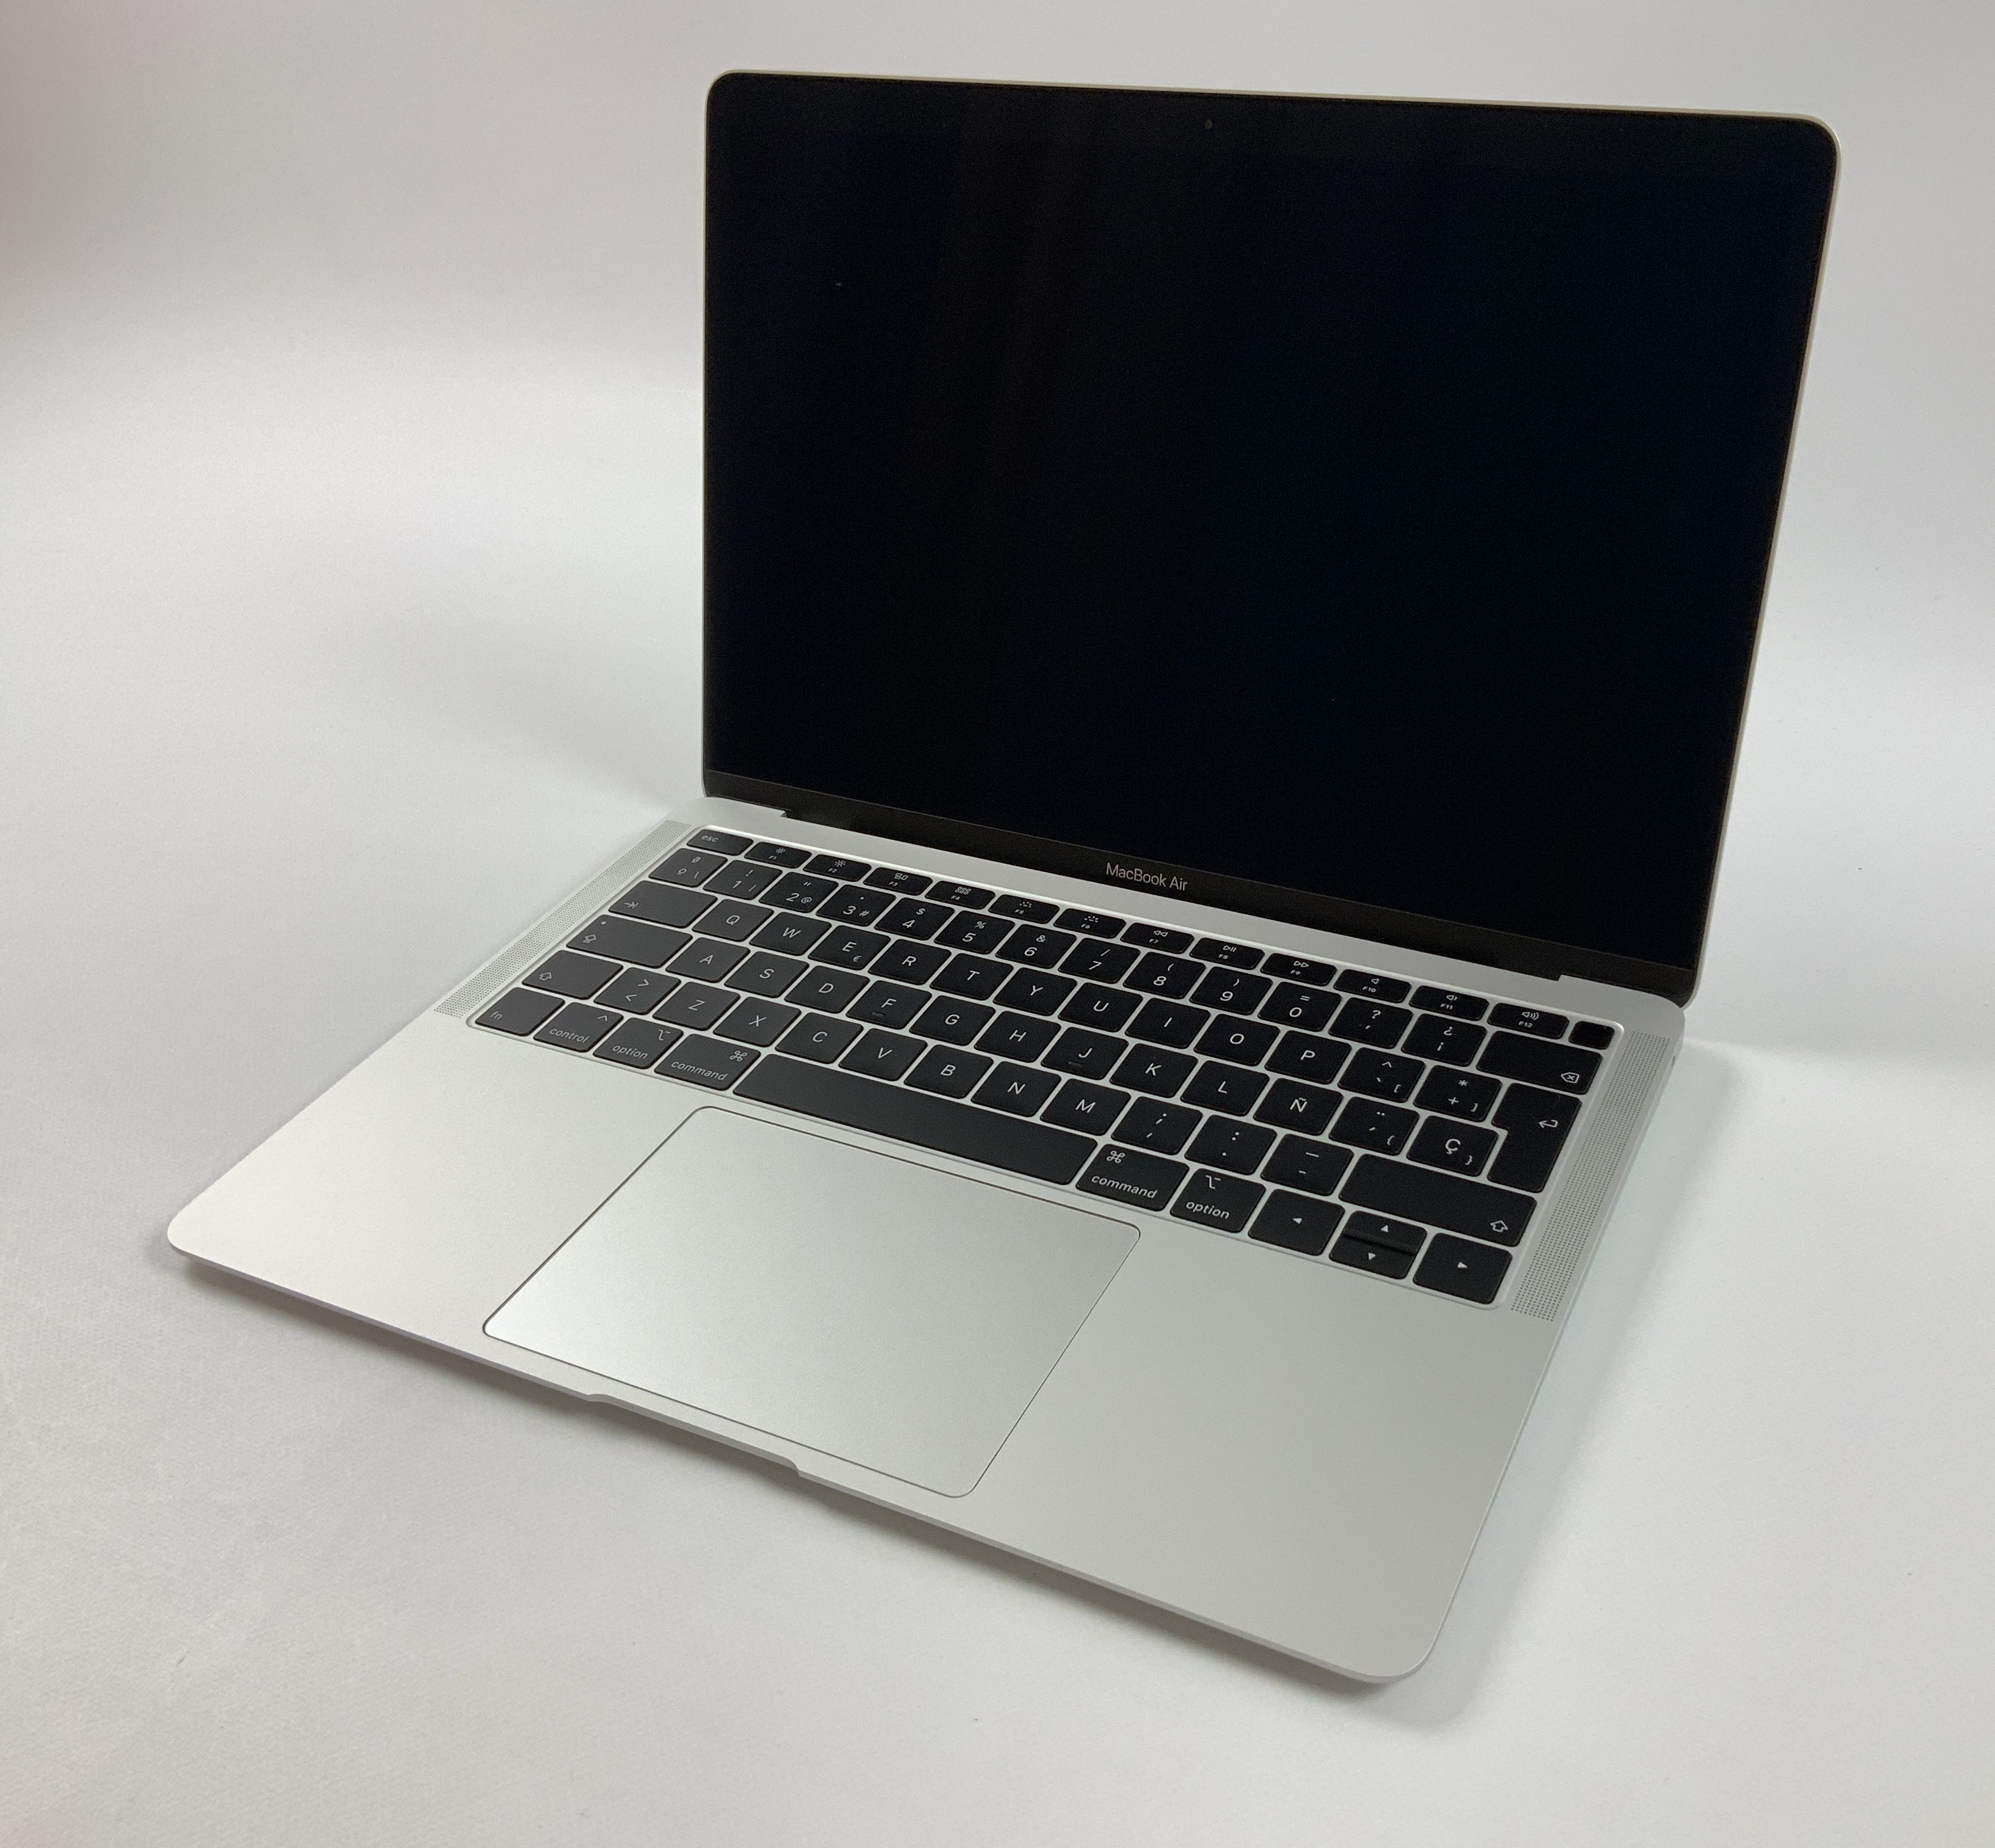 "MacBook Air 13"" Late 2018 (Intel Core i5 1.6 GHz 16 GB RAM 256 GB SSD), Silver, Intel Core i5 1.6 GHz, 16 GB RAM, 256 GB SSD, imagen 1"